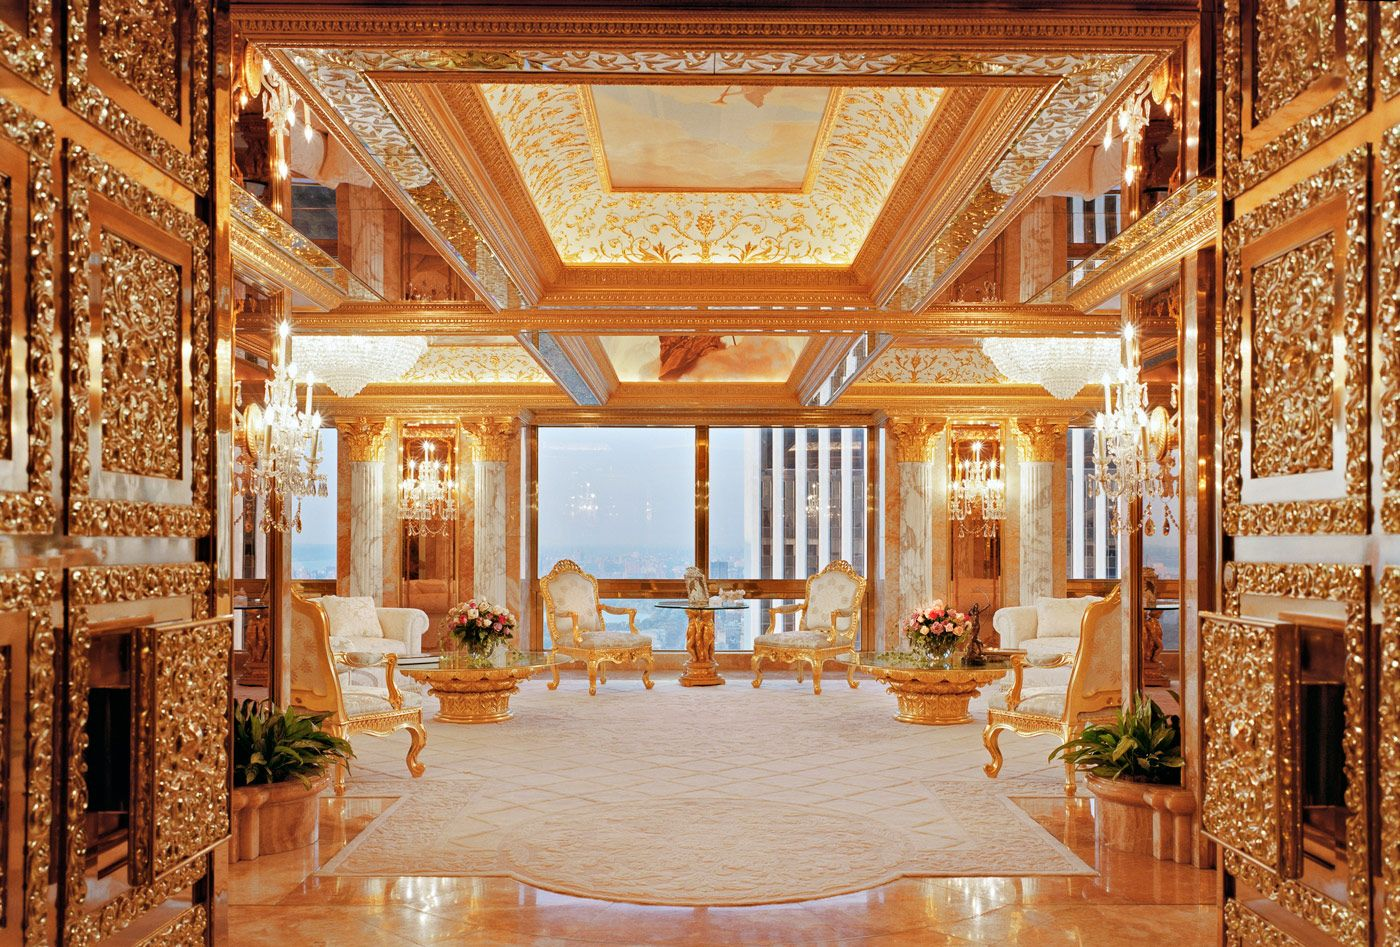 Trumps triplex is a marble and onyx covered ode to versailles that he